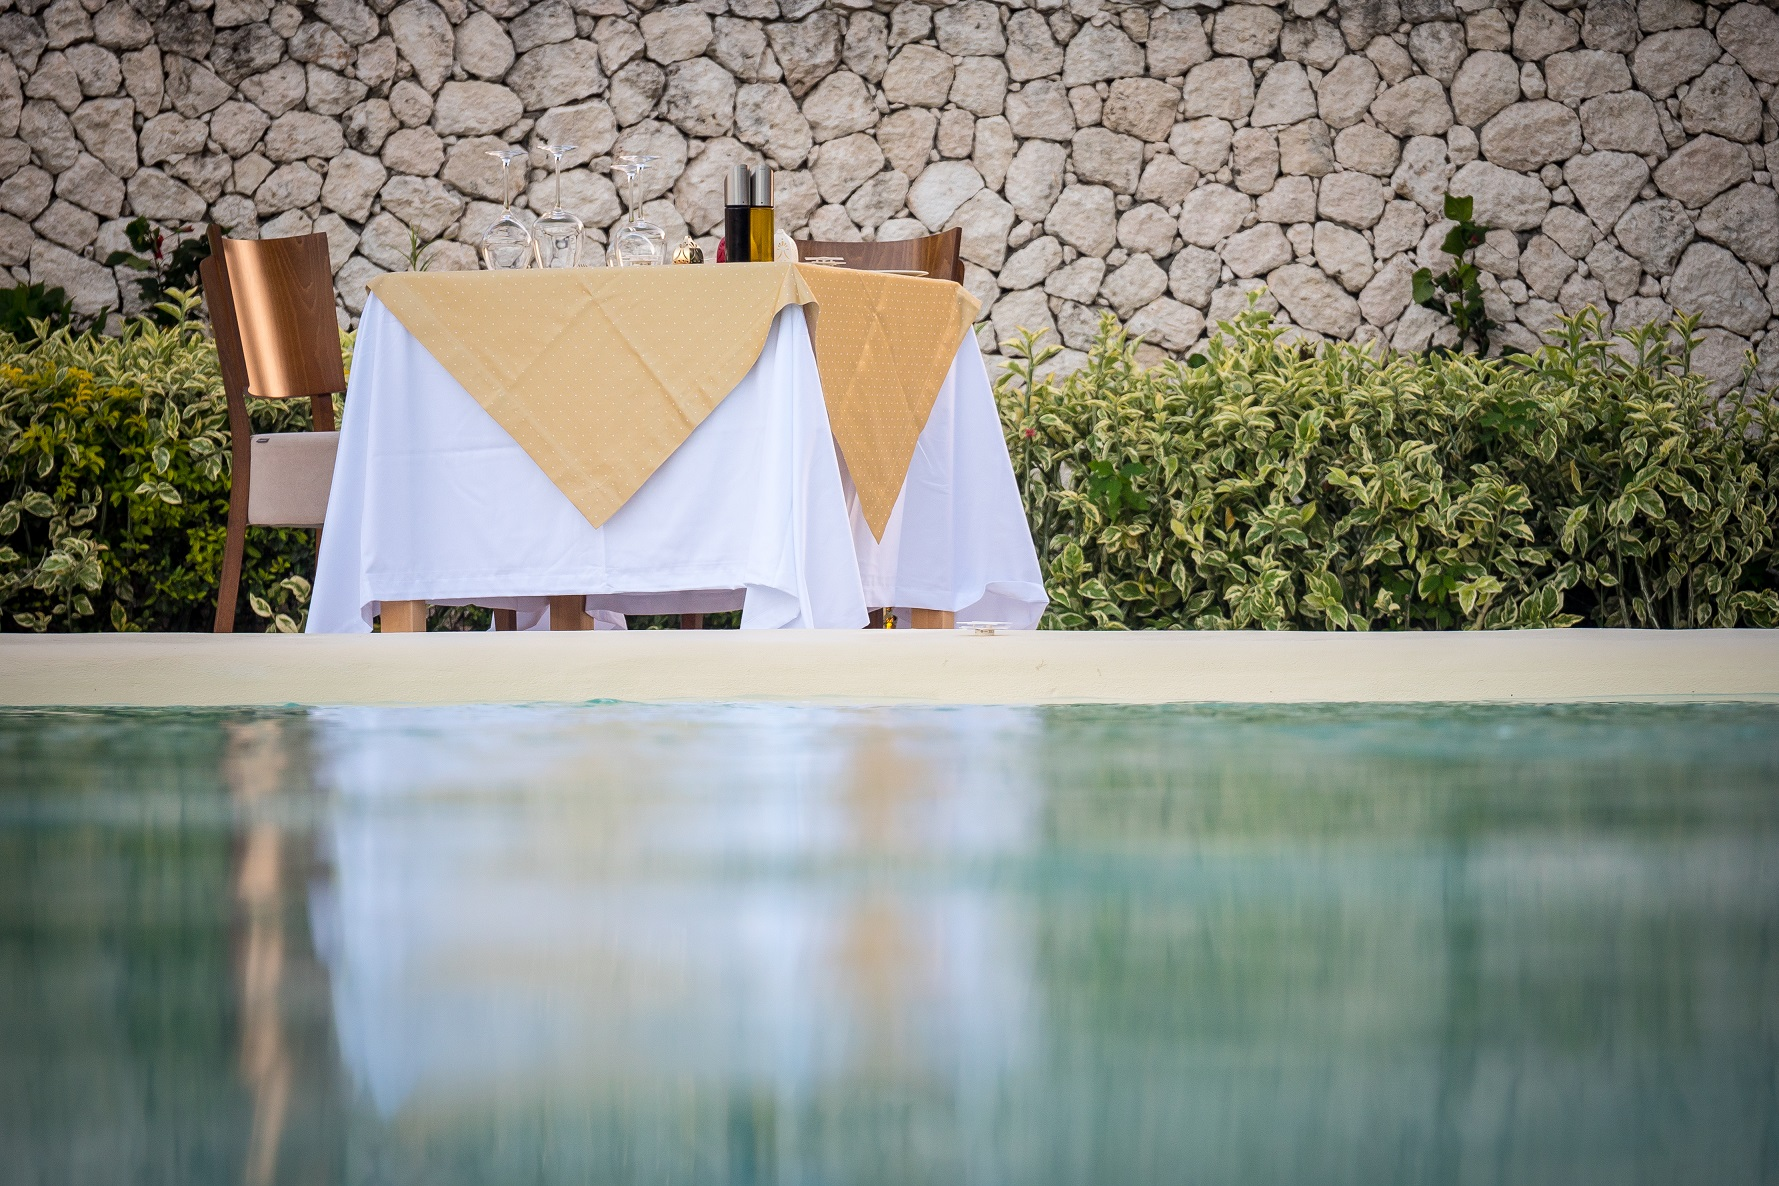 Table by the pool